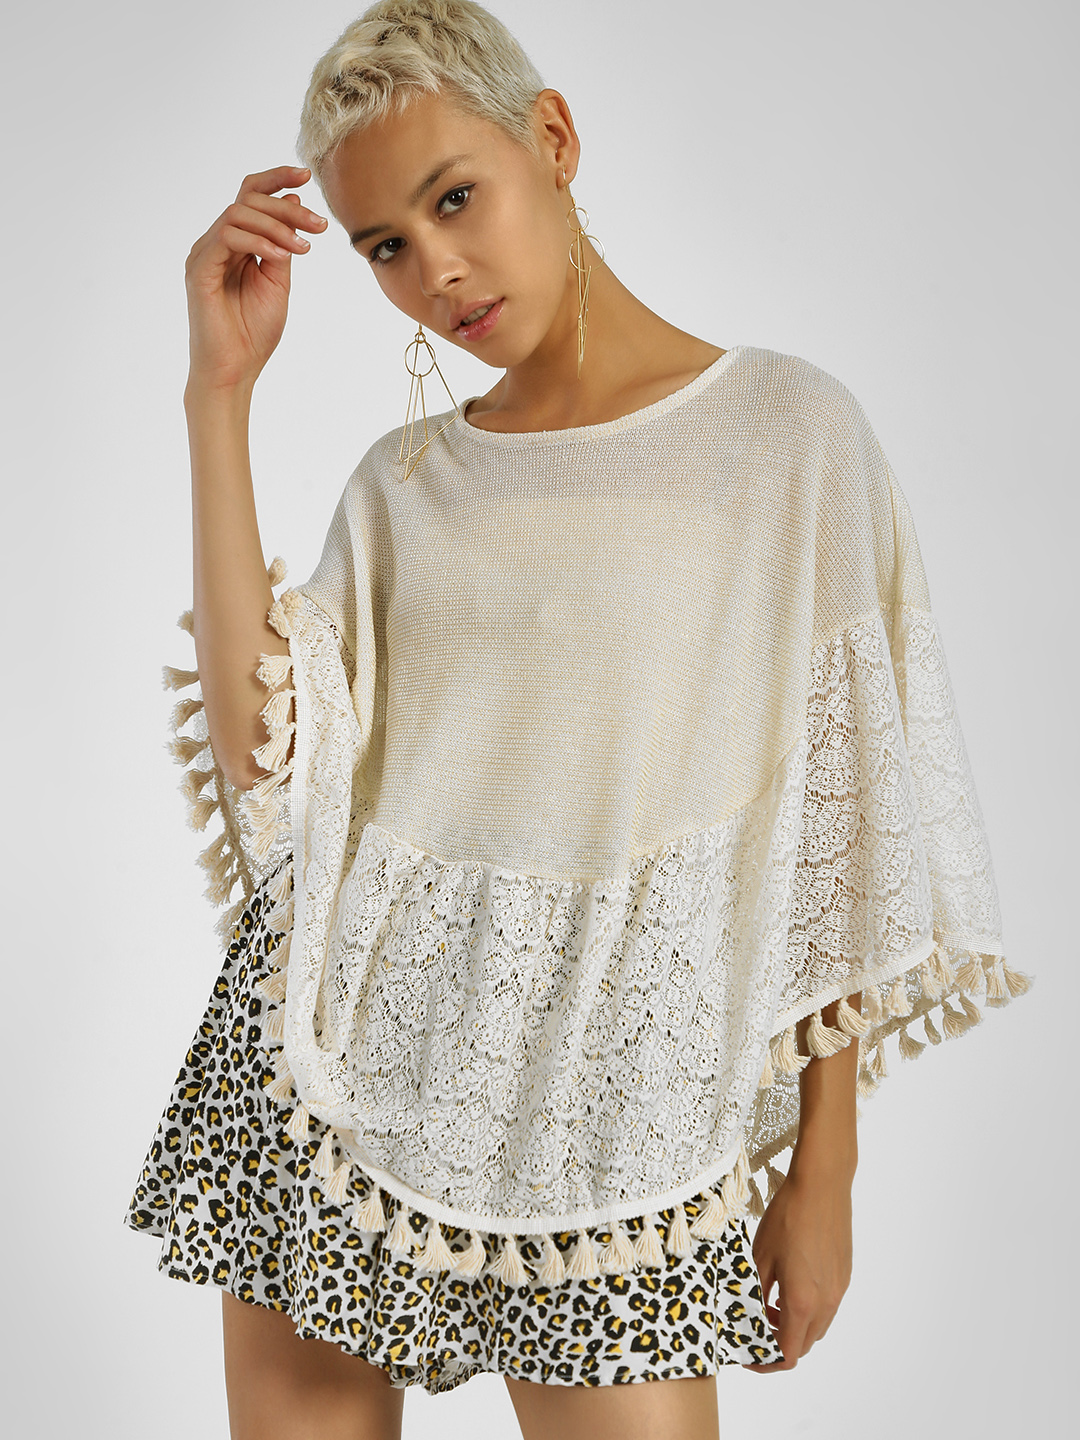 Privy League White Lace Pom-Pom Hem Cape Top 1